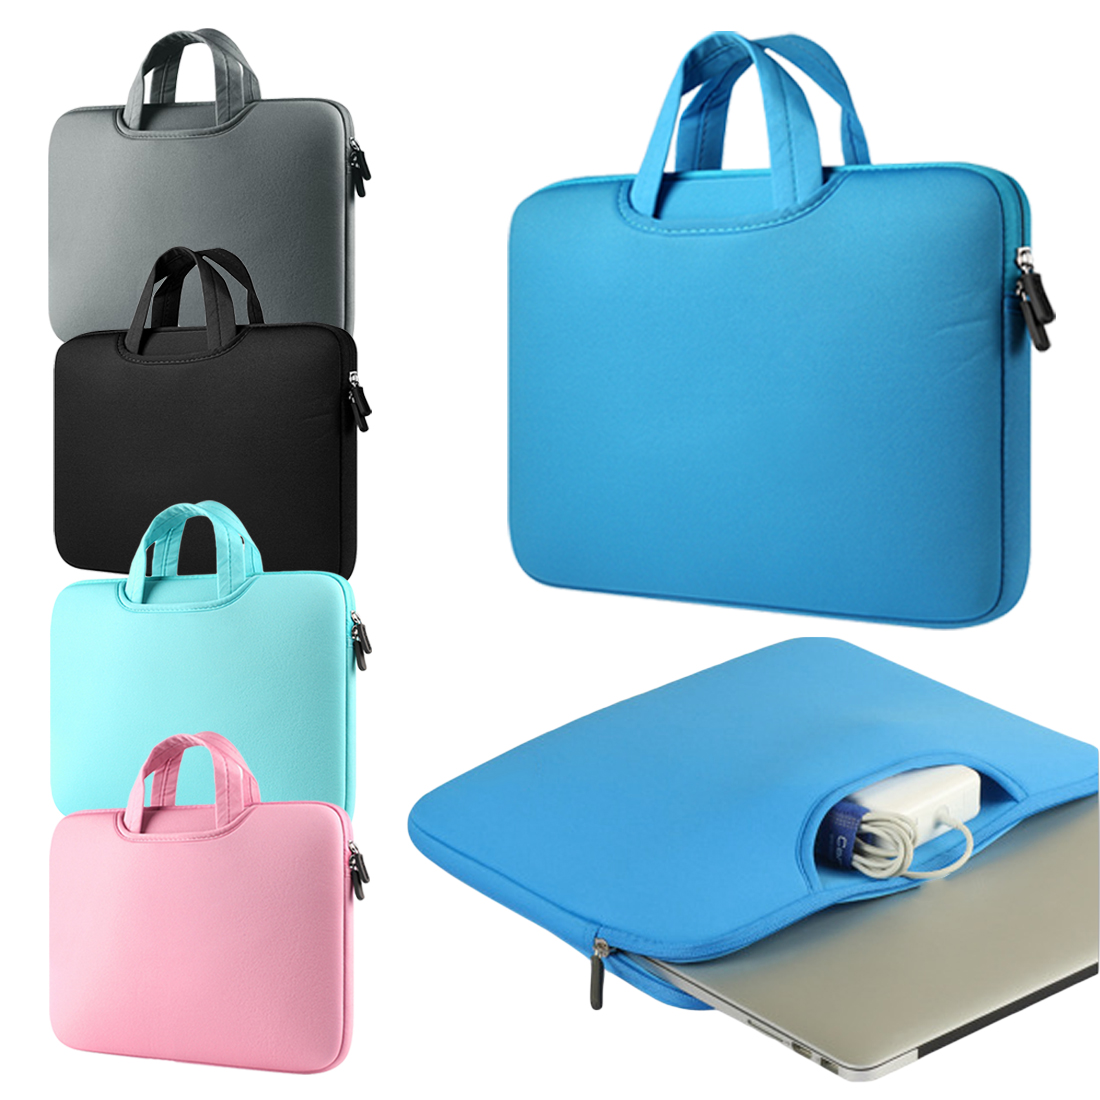 Laptop Bags 11.6 13.3 15.4 15.6 Inch Notebook Bag 13.3 For MacBook Air Pro 13 Case Laptop Bag 11,13,15 Inch Protective Case